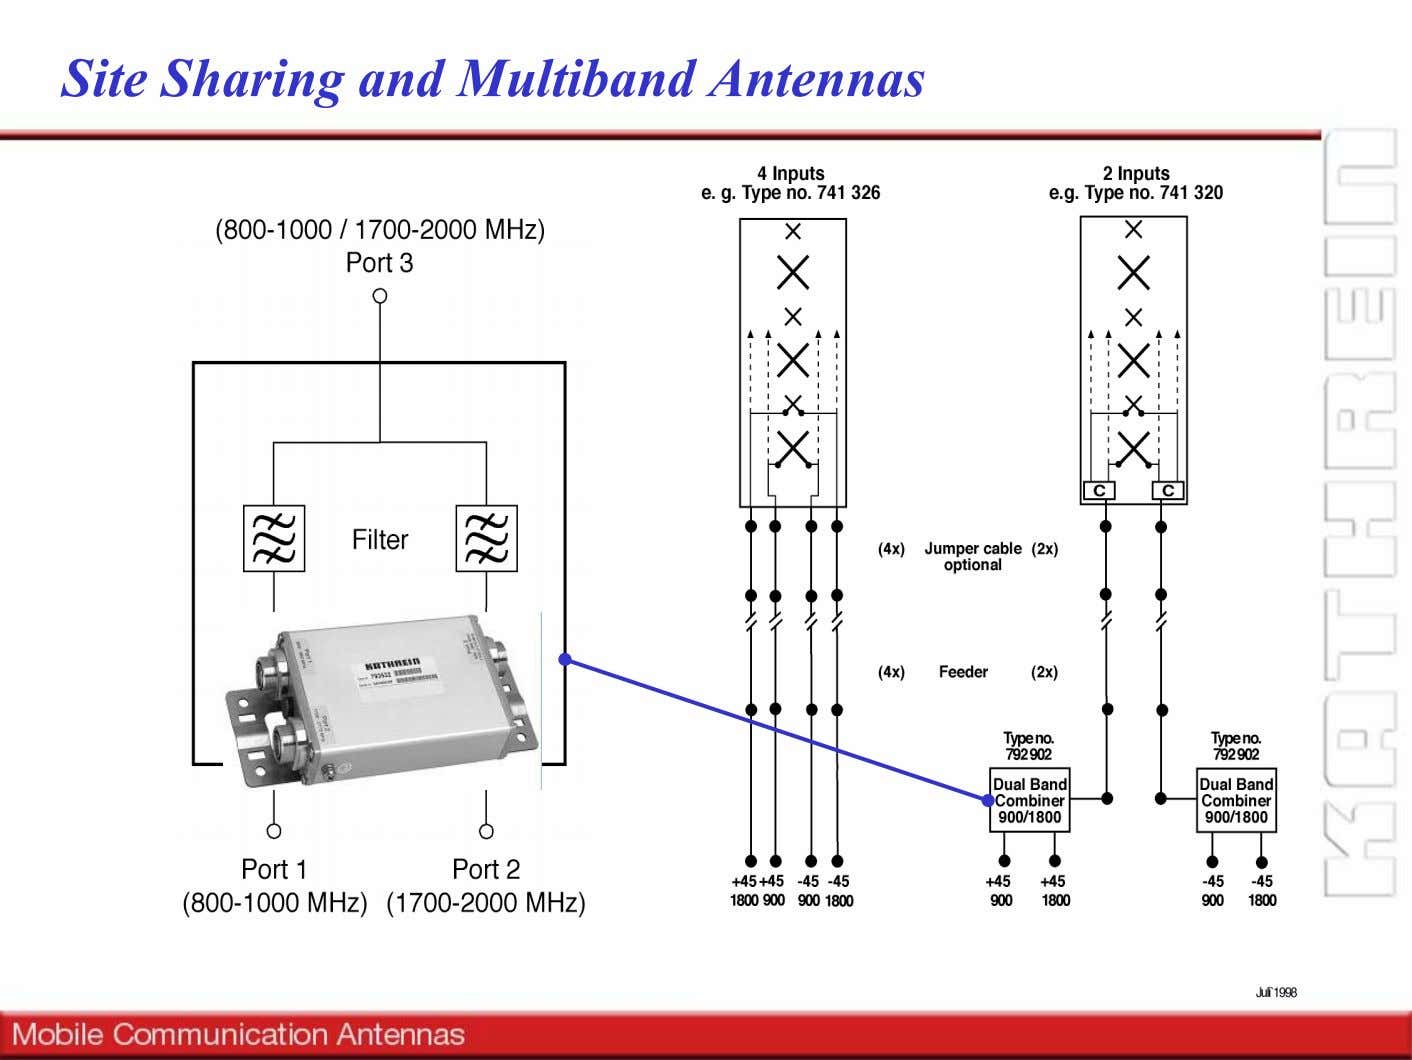 Site Sharing and Multiband Antennas